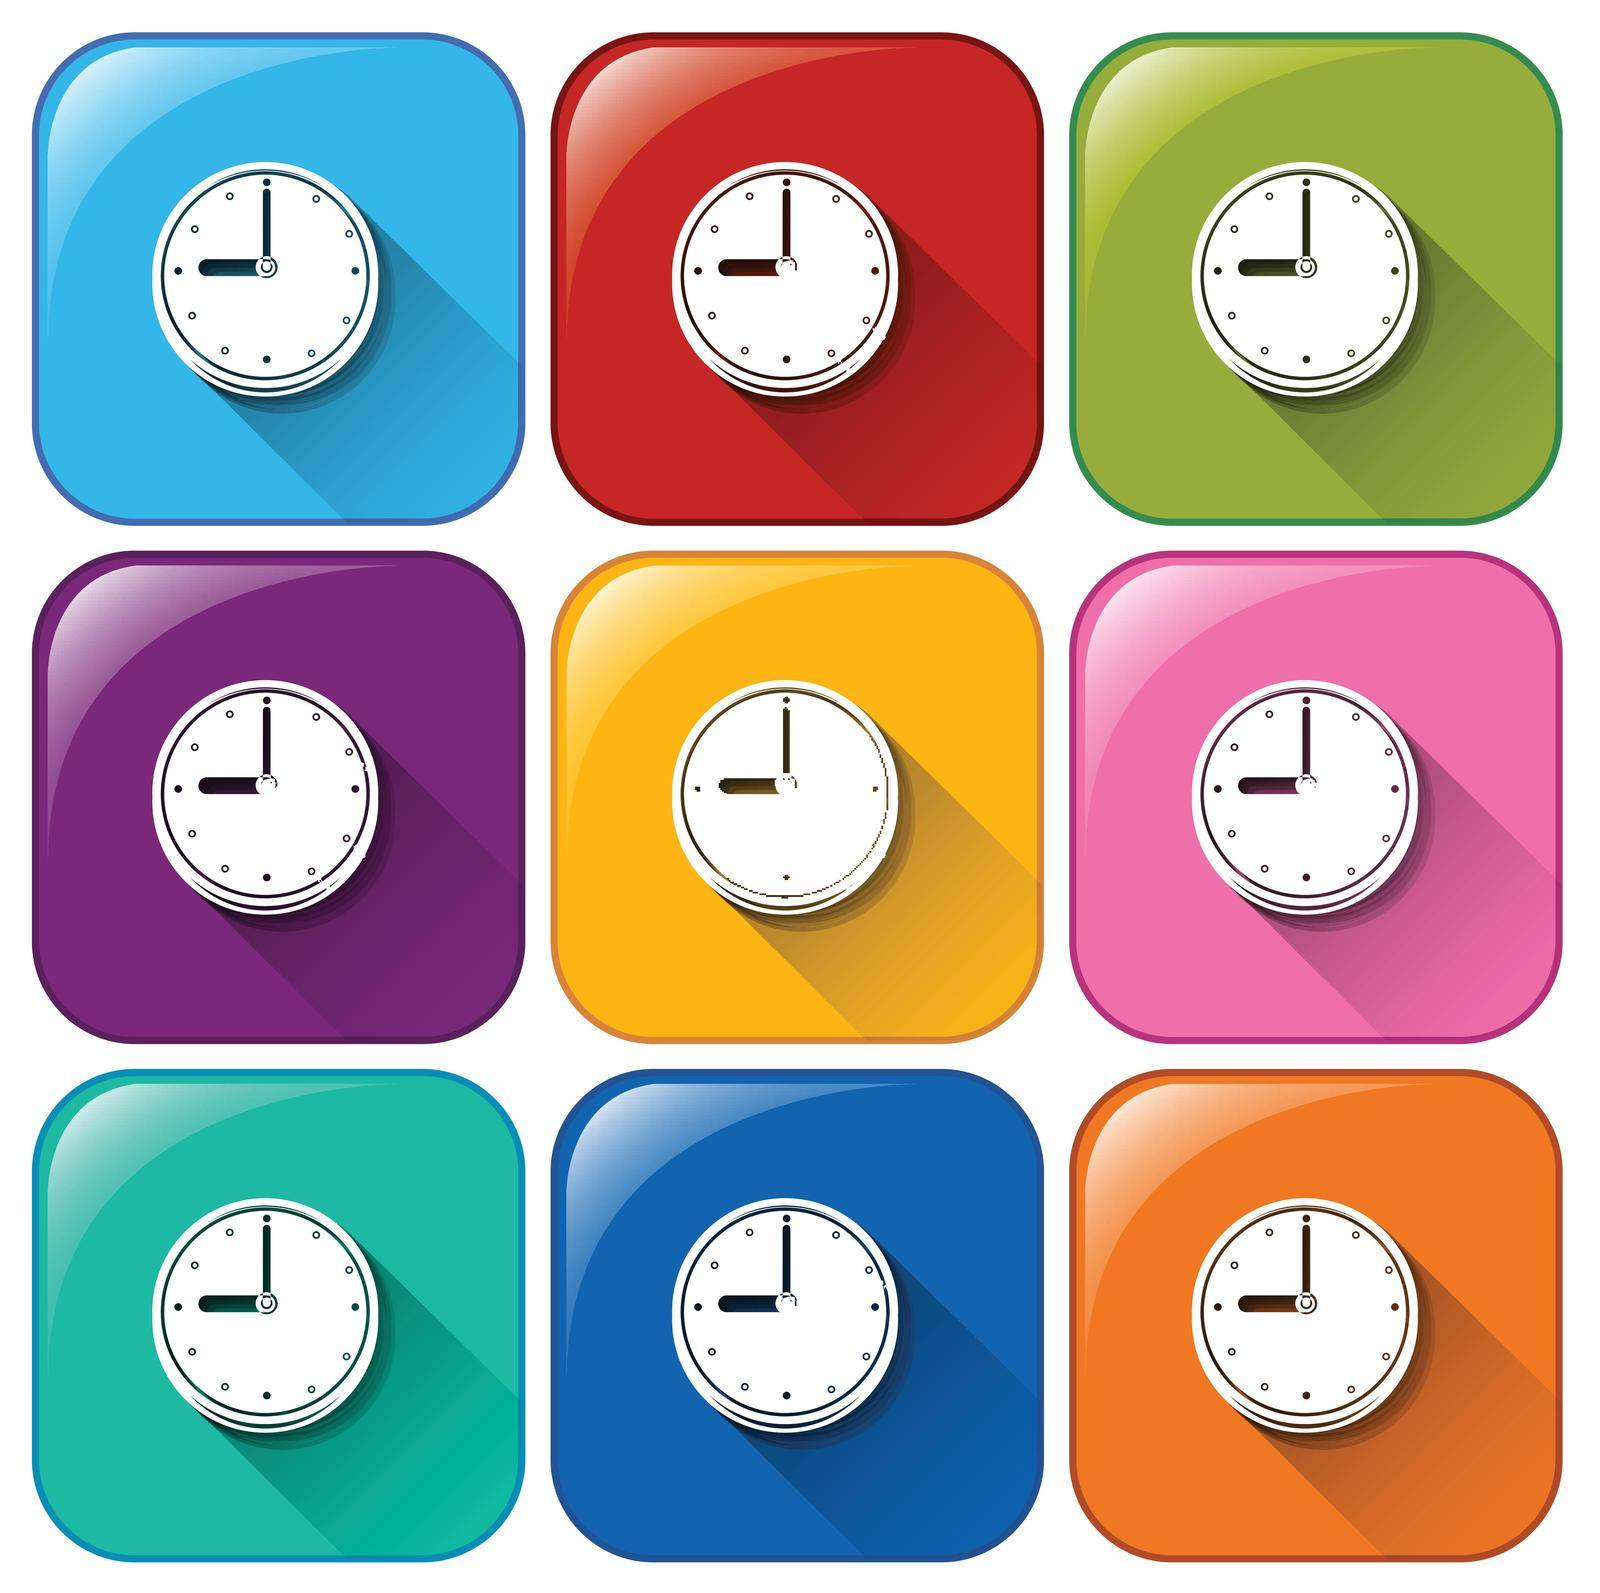 Rounded buttons with wallclocks on a white background